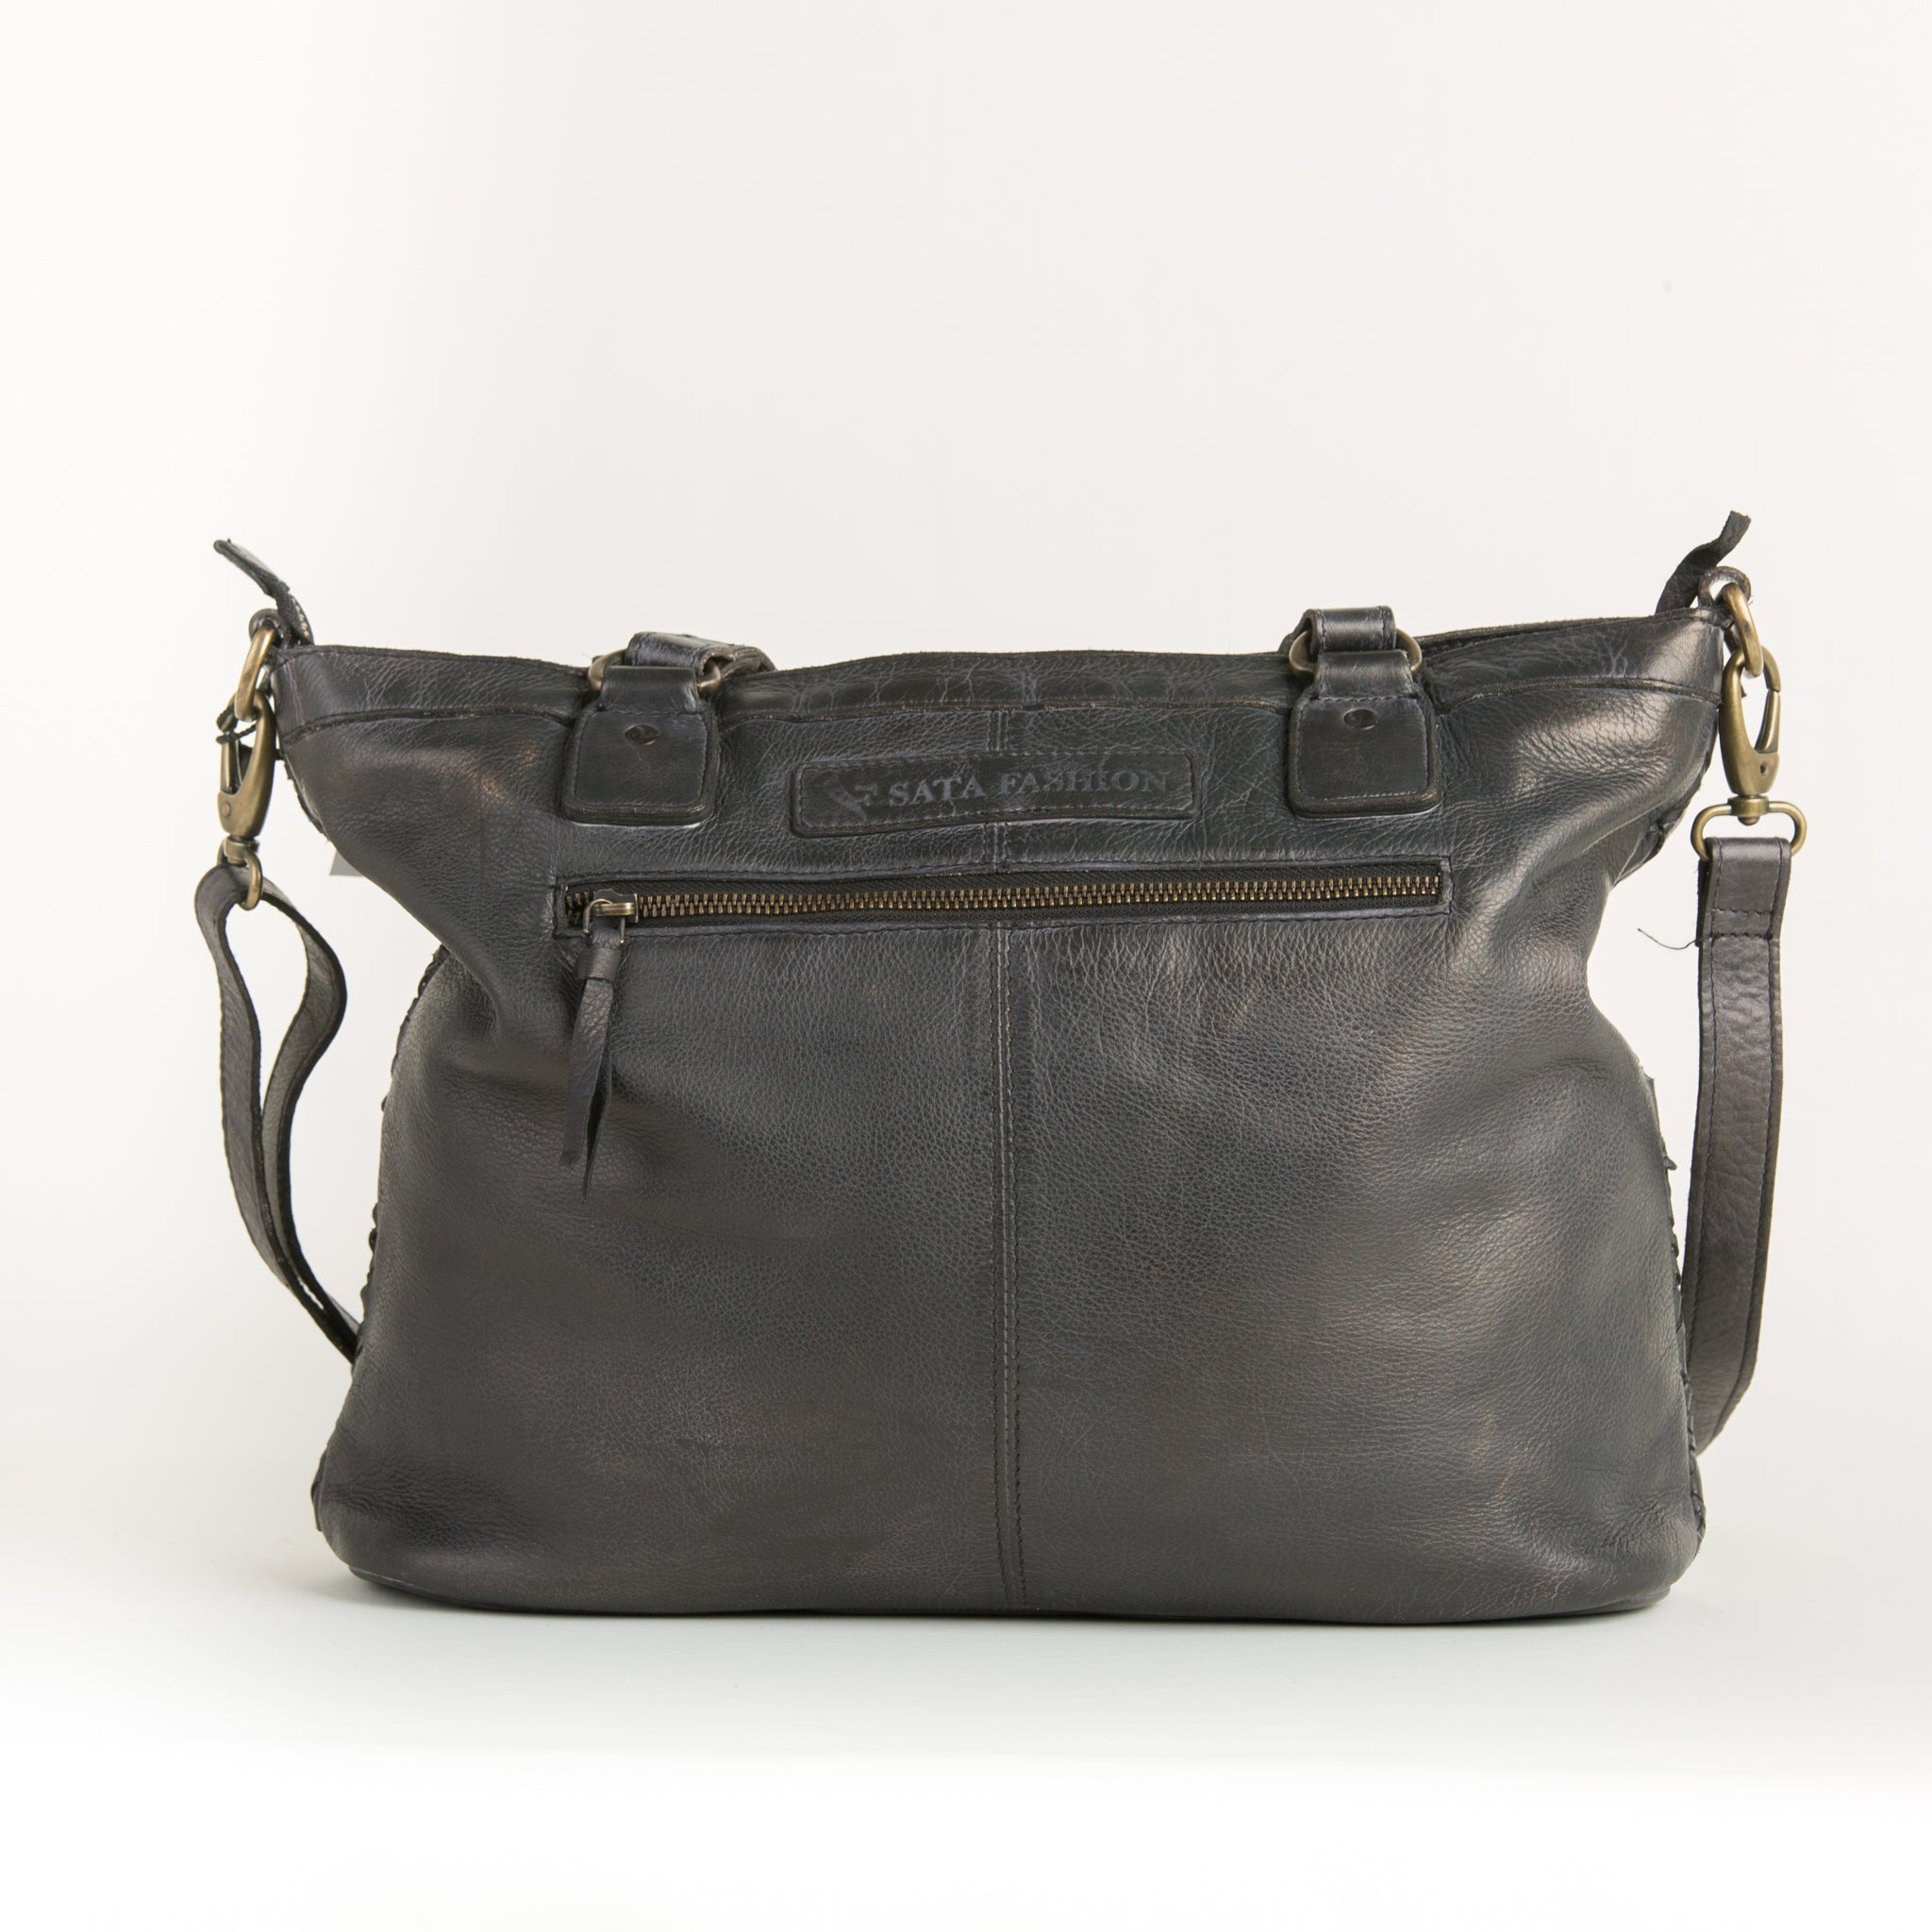 Washed Leather Handbag